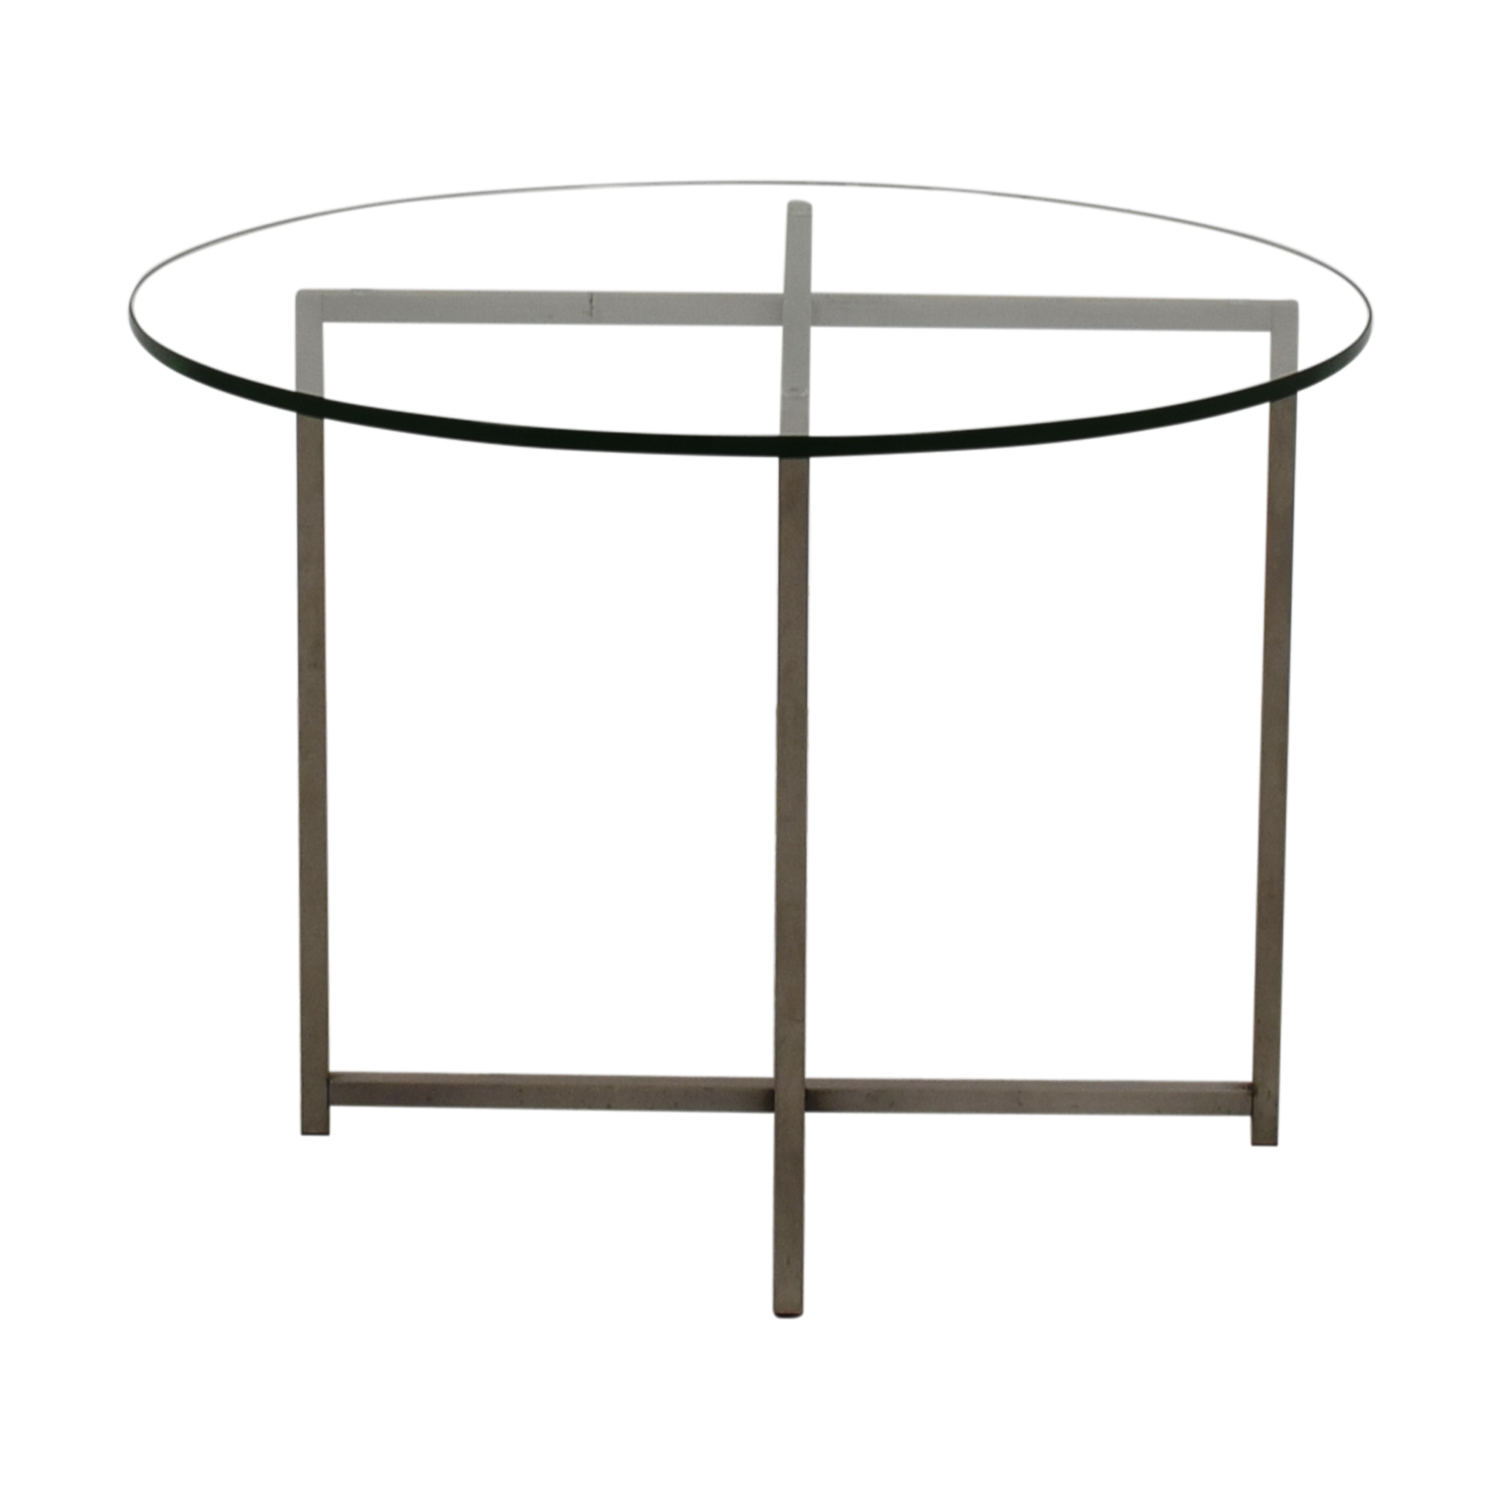 Room and Board Room & Board Stainless Steel and Glass End Table coupon